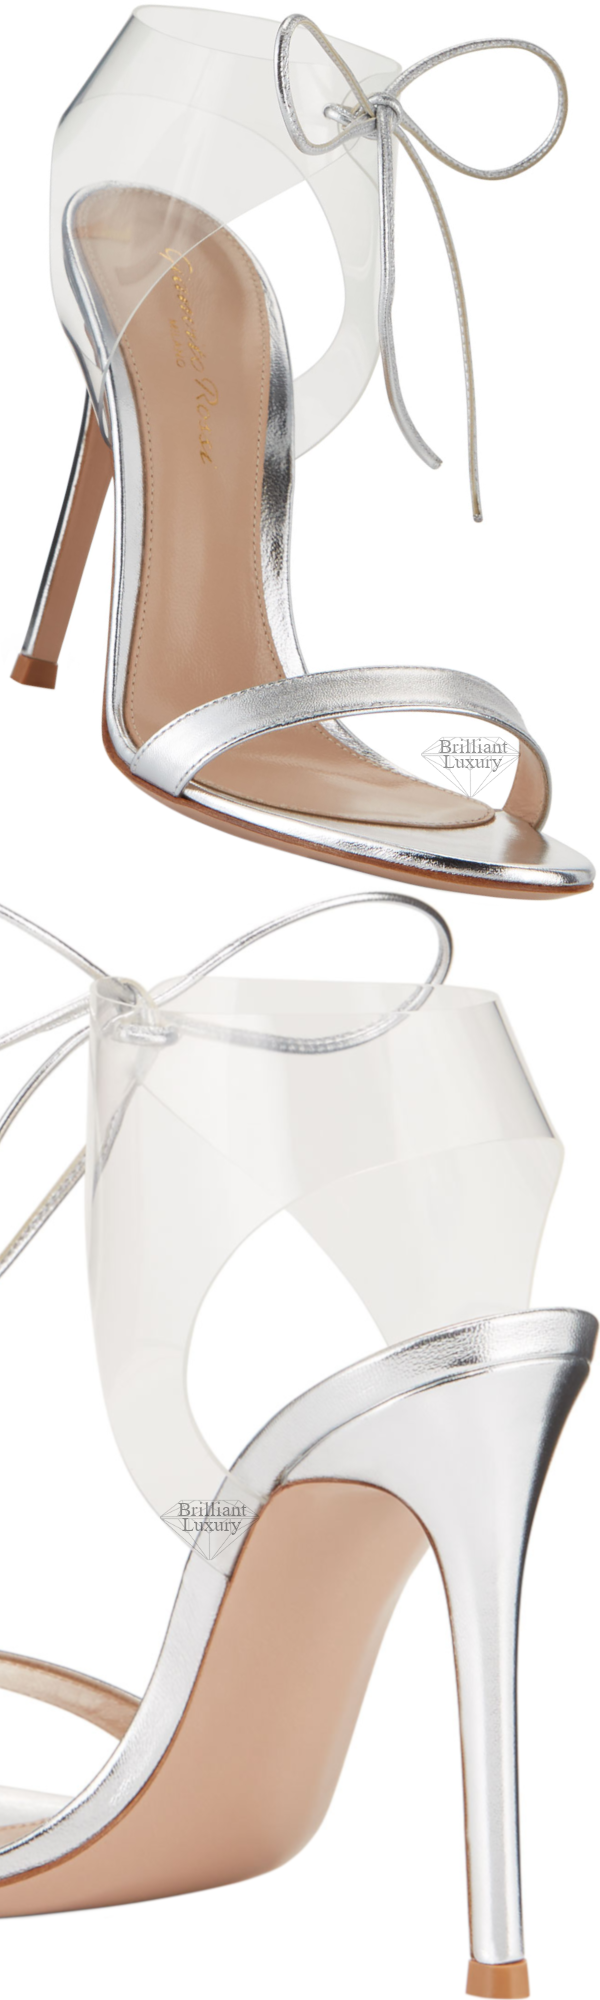 Shoe Collection Spring 2020 Gianvito Rossi Silver Napa Sandals with Plexi Strap